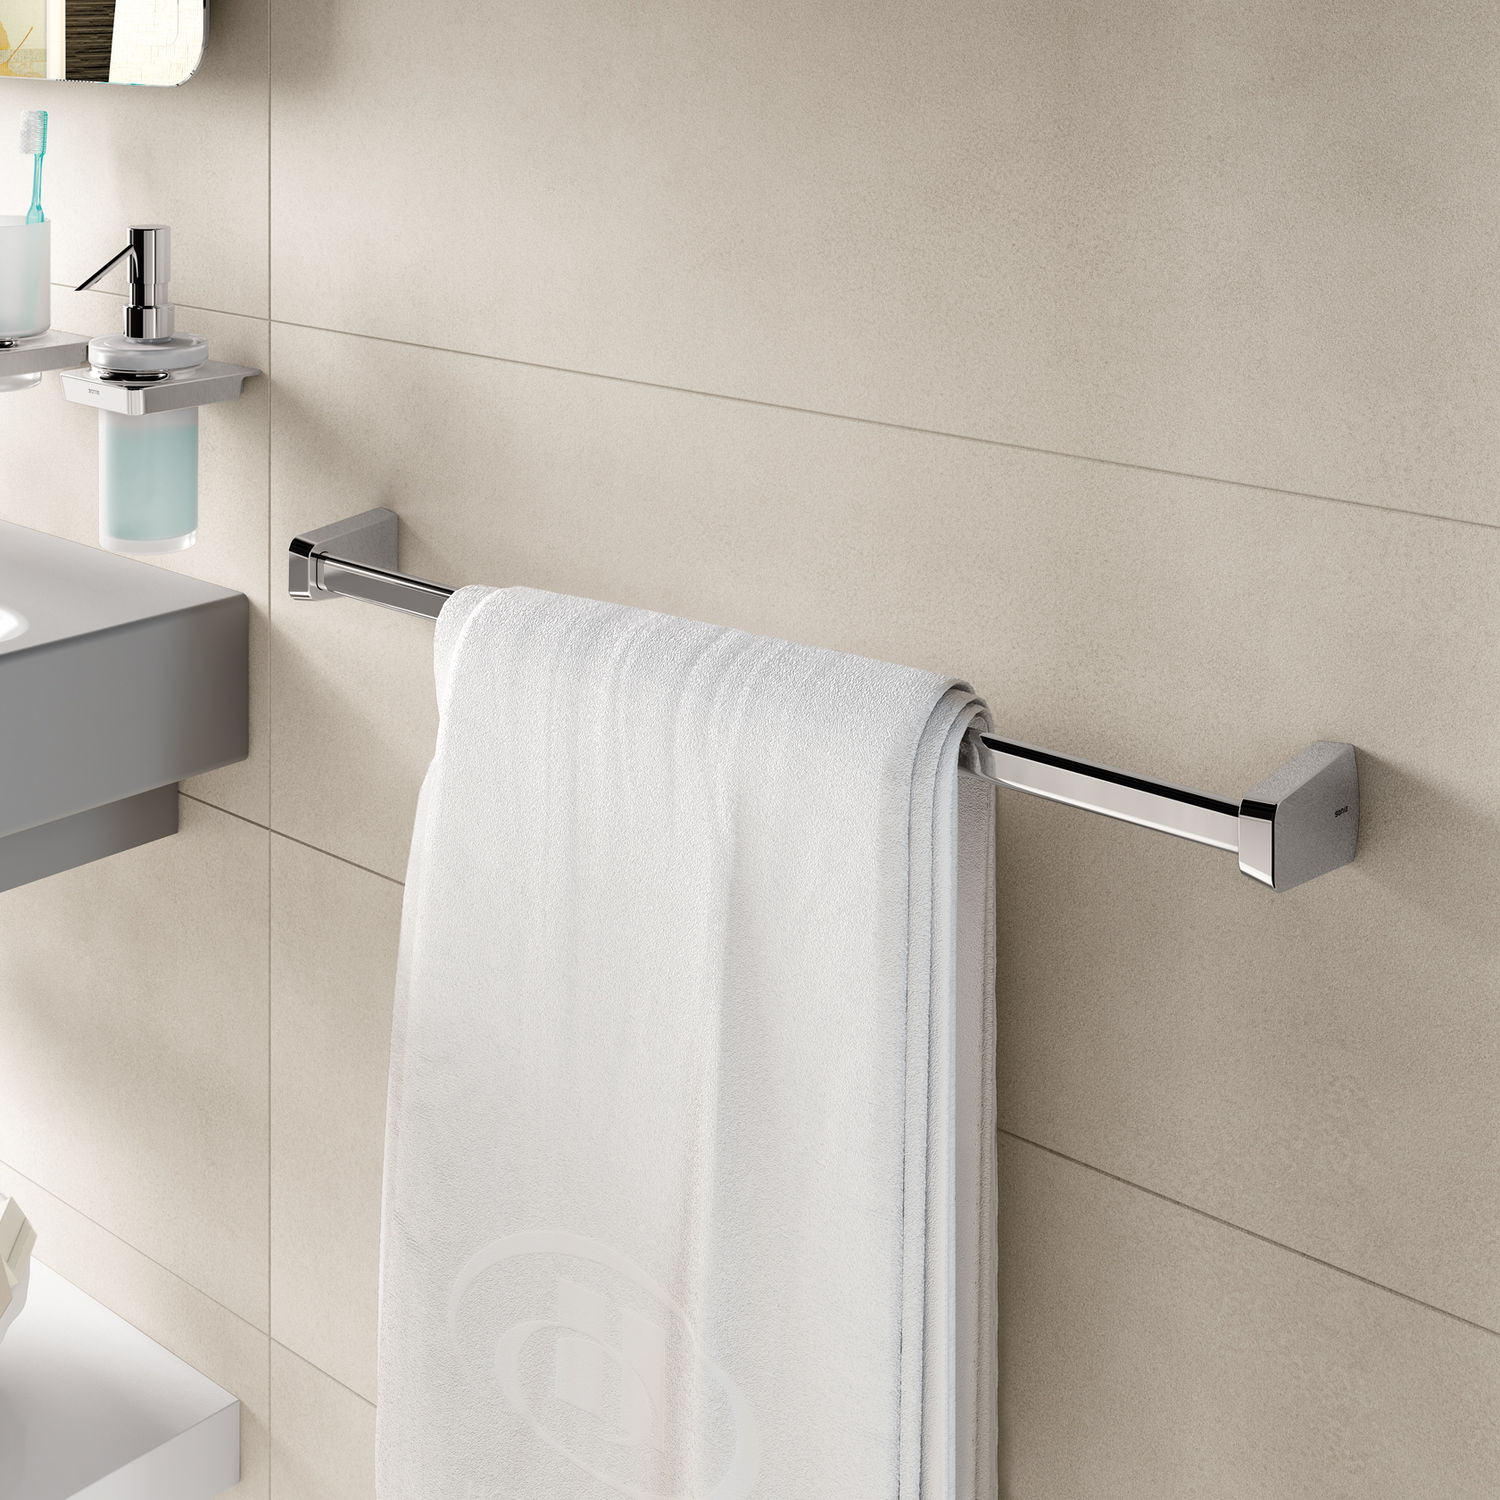 1-bar towel rack / wall-mounted / metal - S6: 16 SERIES - Sonia Bath